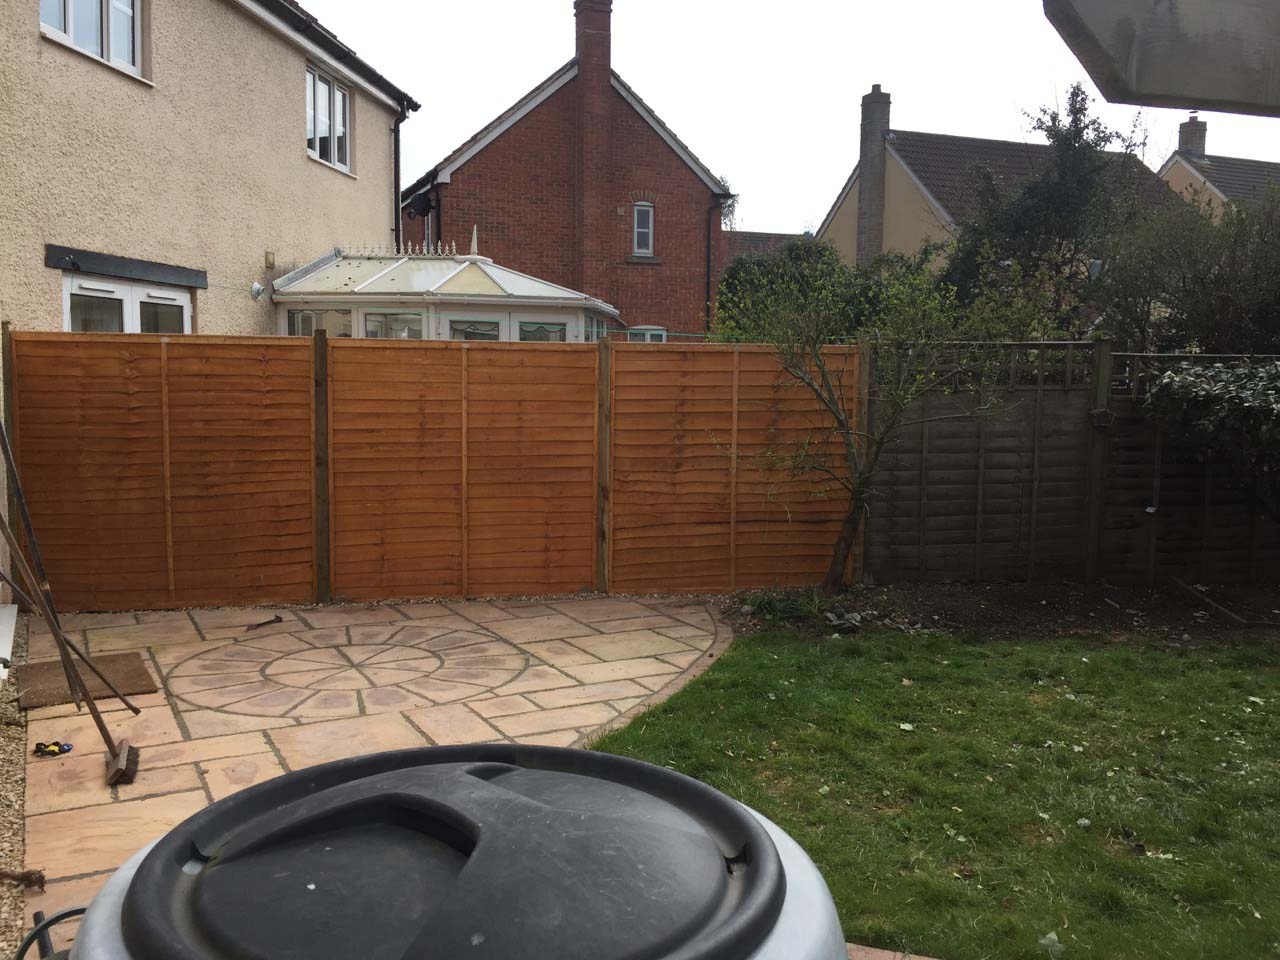 SMB Fencing Service provide cost effective fencing solutions including closeboard (featheredge), all types of Panel, Trellis and Picket Fences. We cover all of Weston super Mare and surrounding areas and offer a no-nonsense quality fencing installation service to all our customers.<br /> We also provide a fast response fencing repair service.<br />